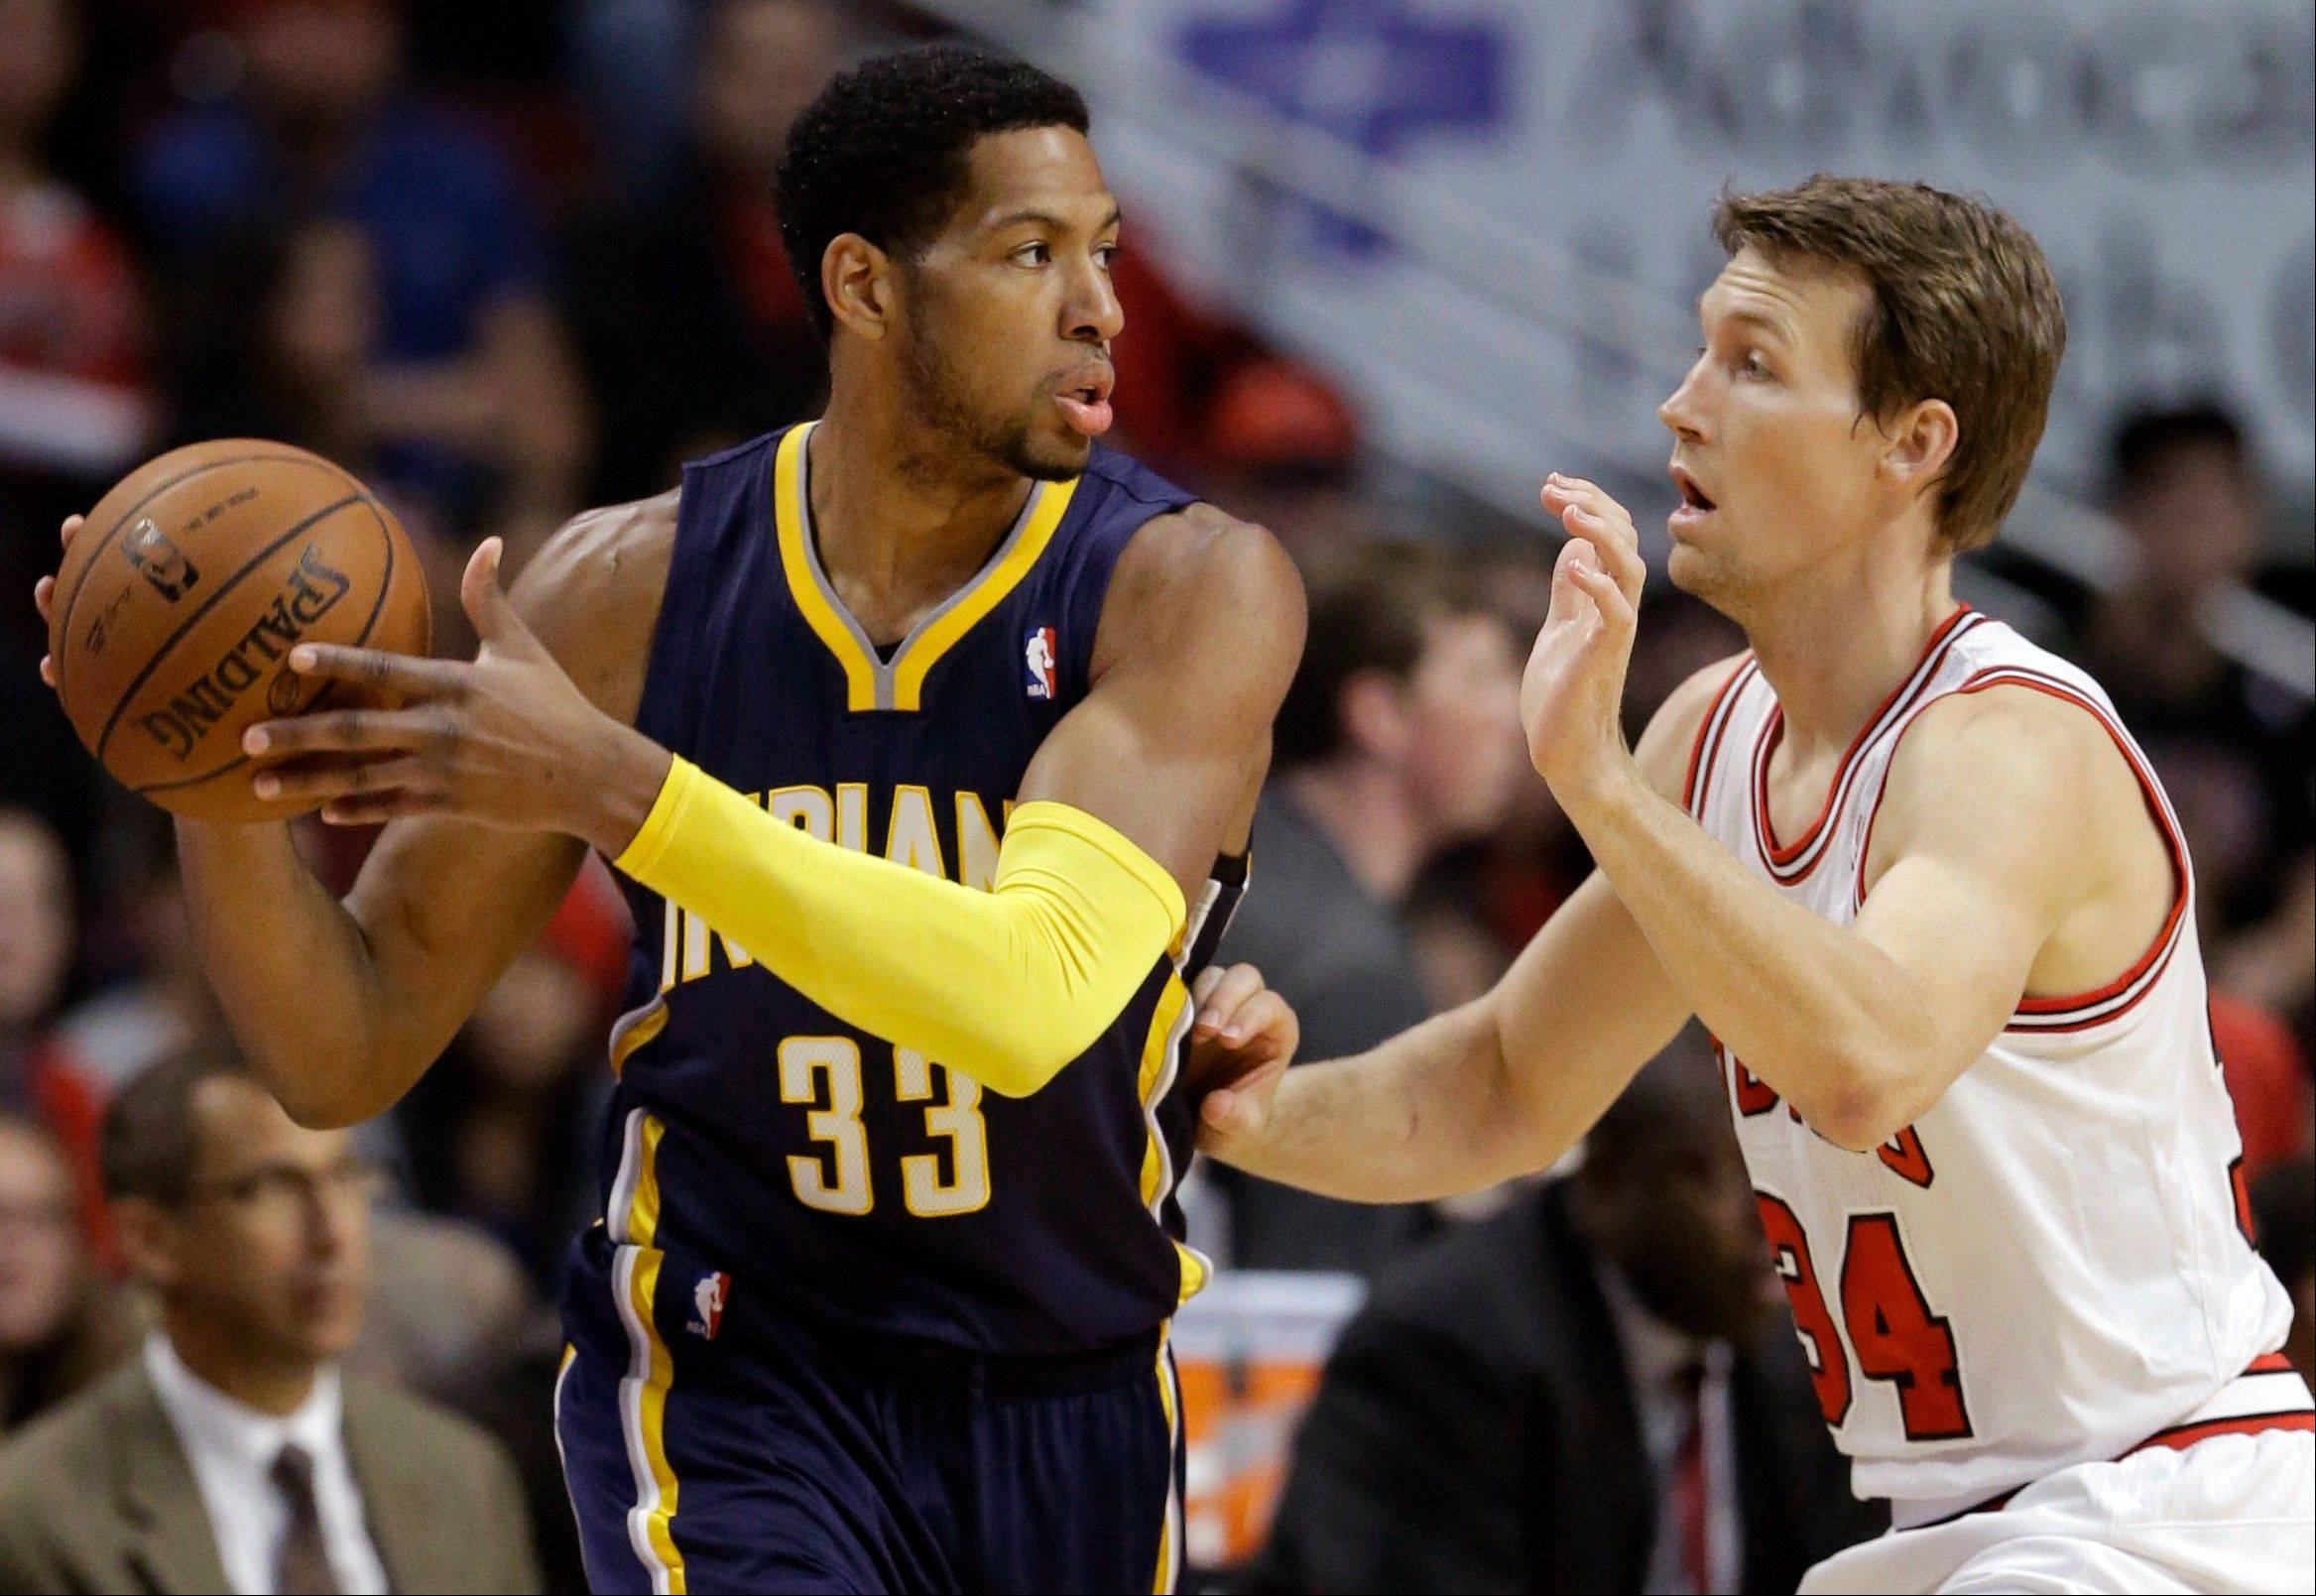 Pacers forward Danny Granger (33) looks to a pass as Chicago Bulls guard Mike Dunleavy (34) guards during the first half of an NBA preseason basketball game in Chicago on Friday, Oct. 18, 2013.